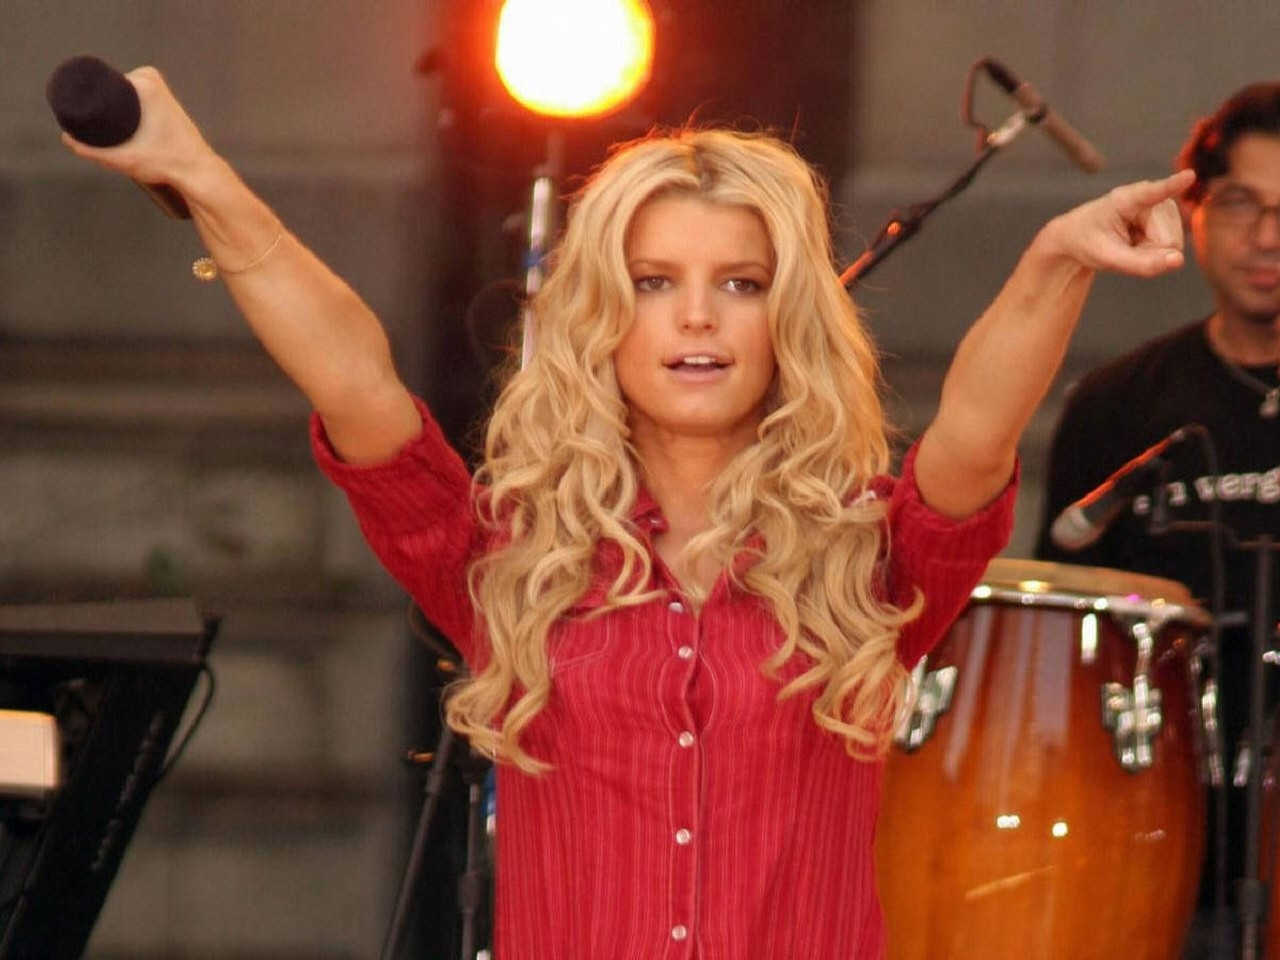 Wallpaper di Jessica Simpson sul palco